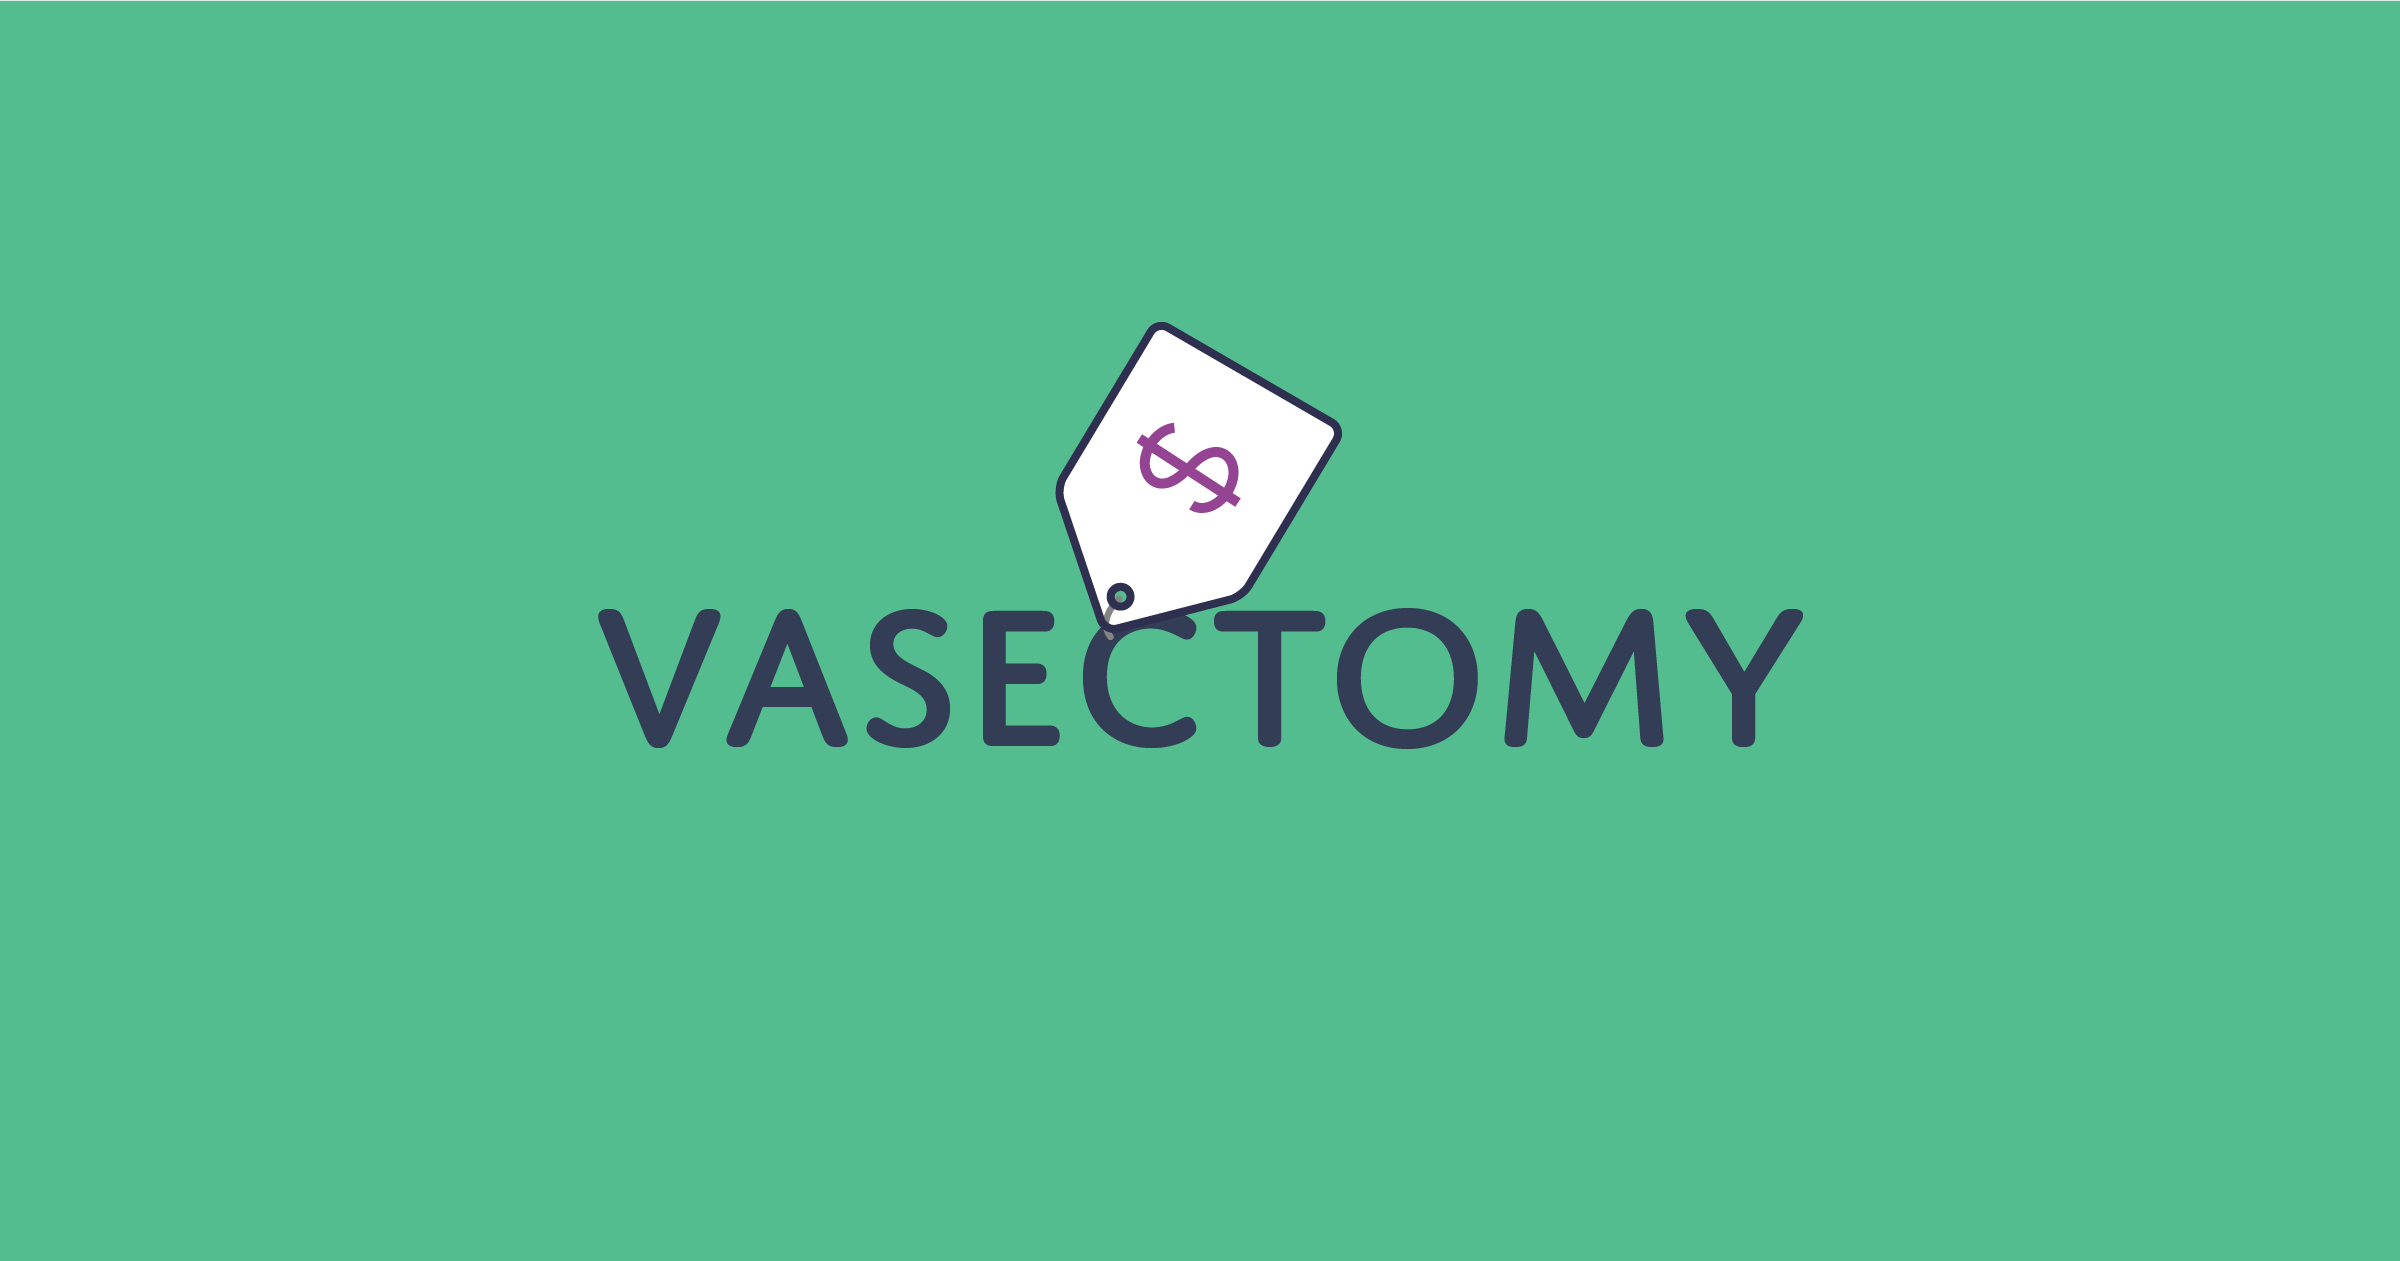 How much does a vasectomy cost?